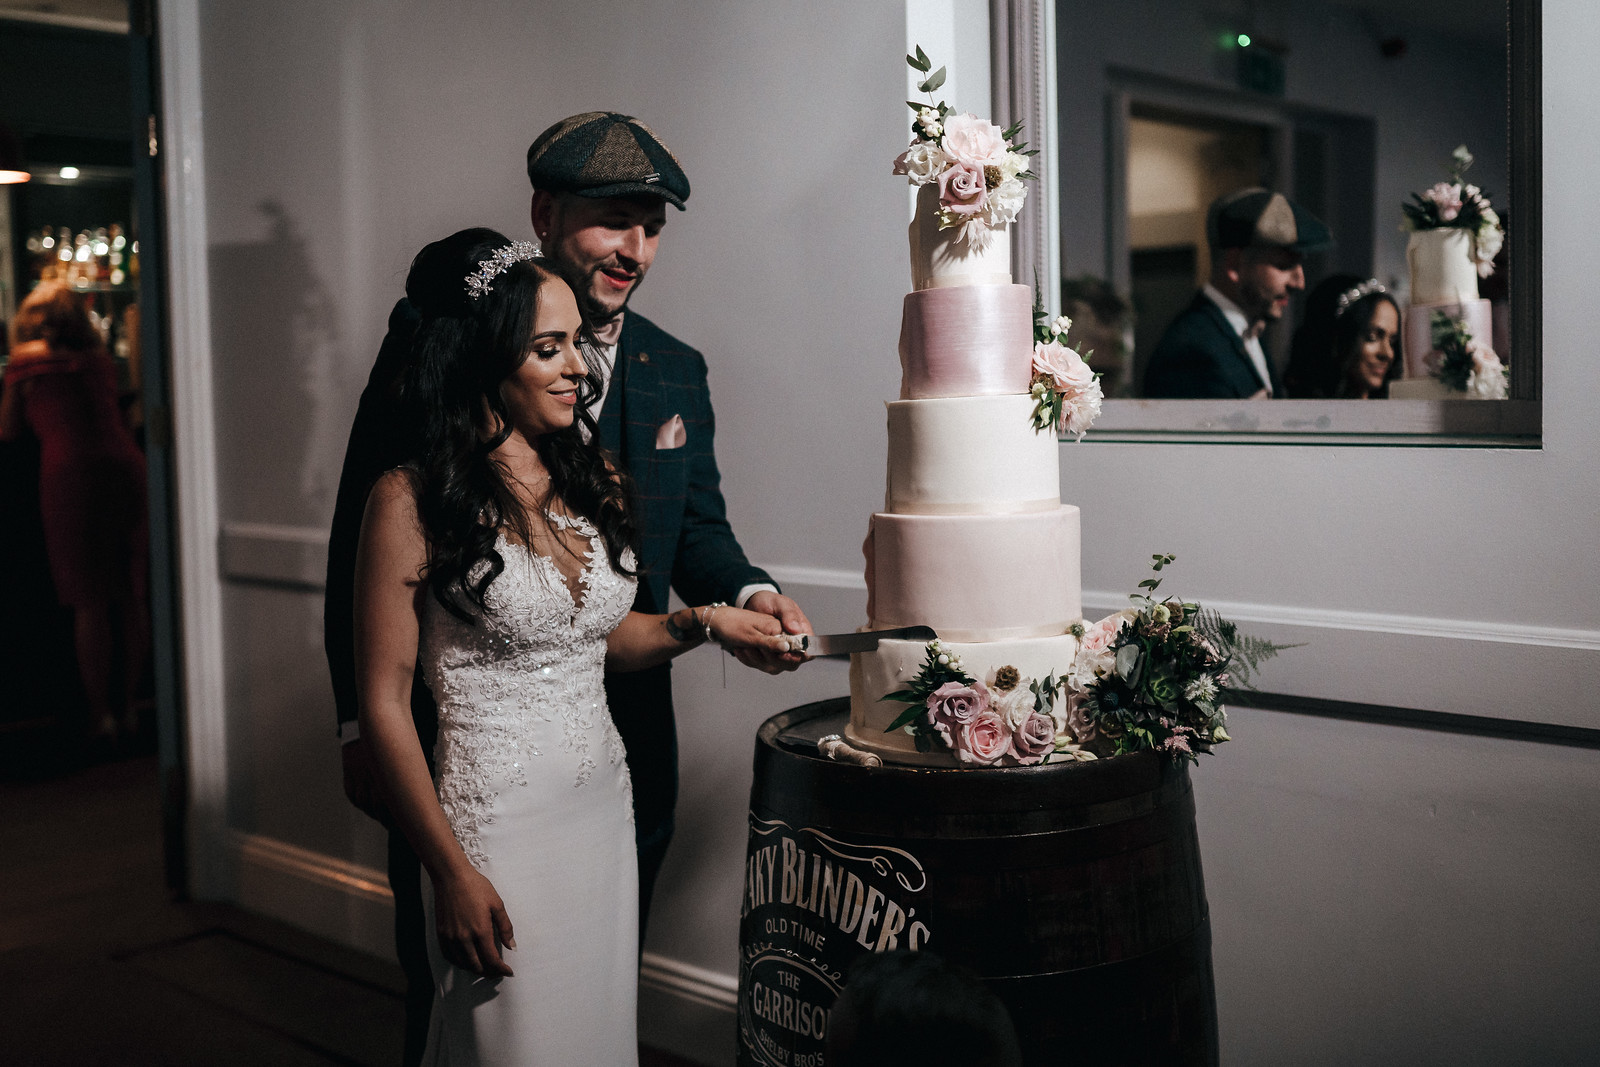 Bride and groom smiling as they cut their cake